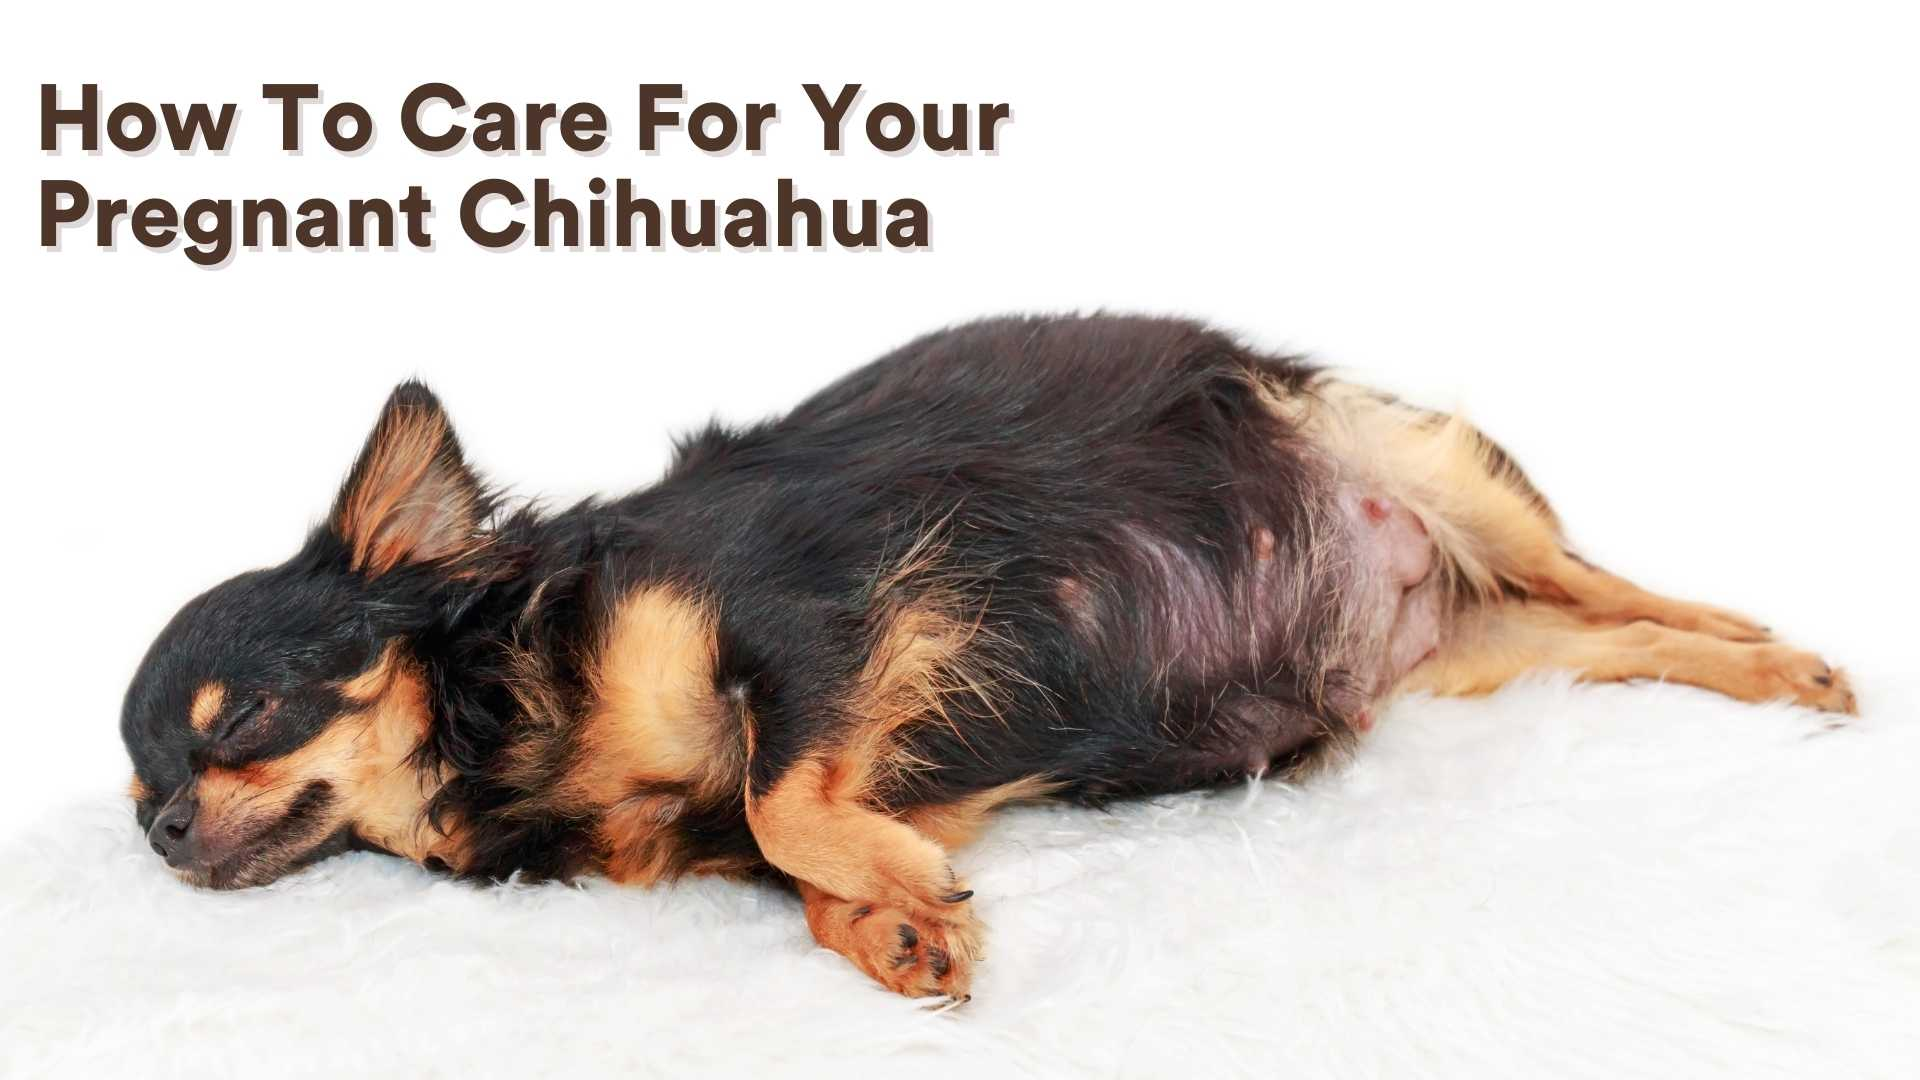 How To Care For Your Pregnant Chihuahua